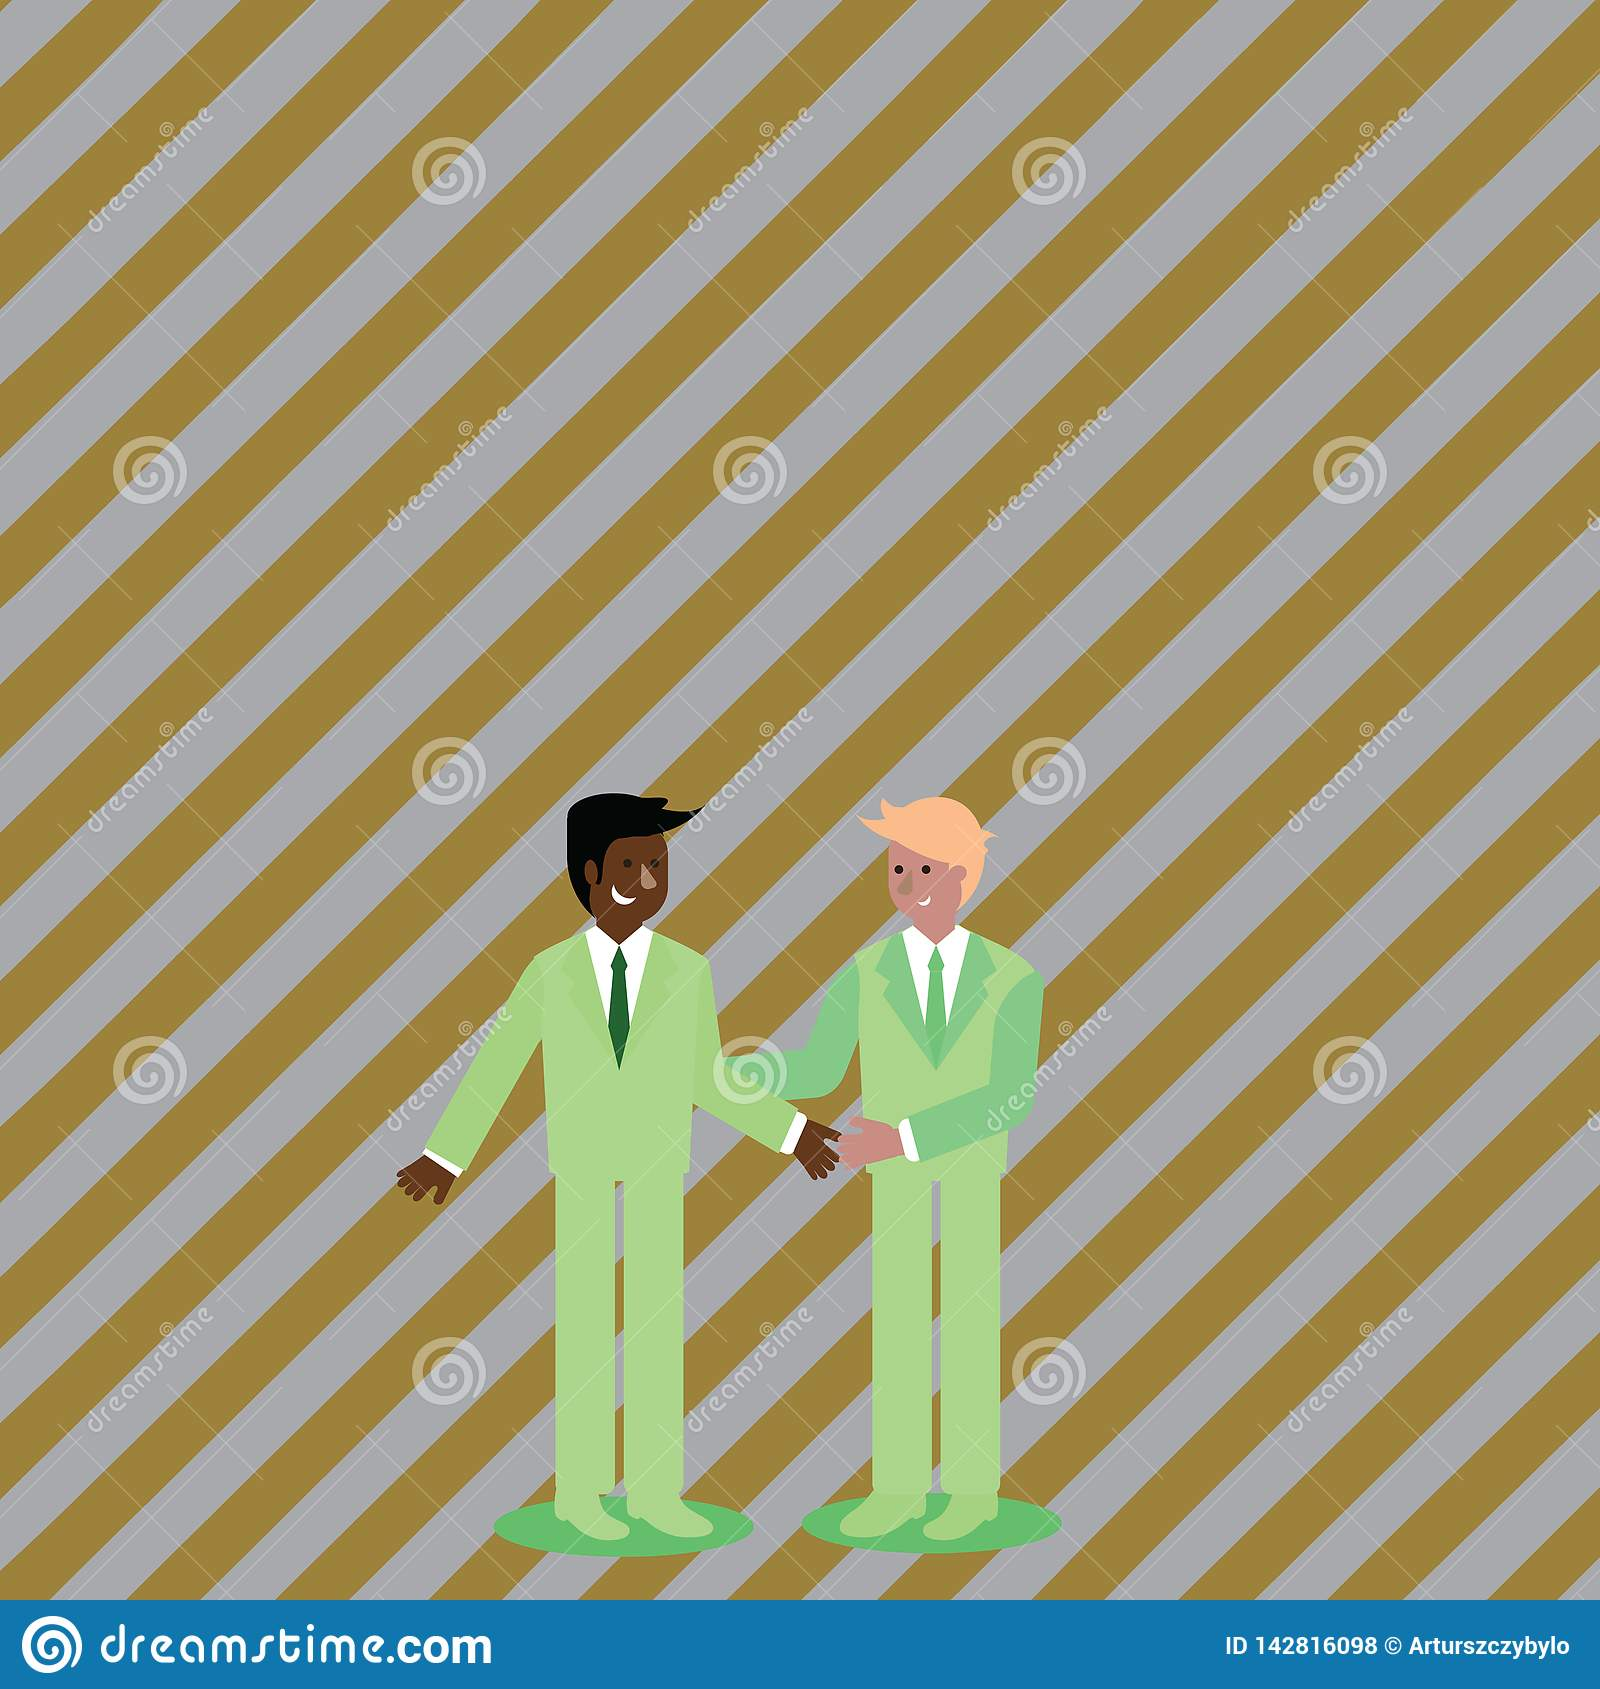 Businessmen Smiling, Standing and Handshaking. Two Men in Suit Greeting Each Other in Hand Holding Gesture. Creative